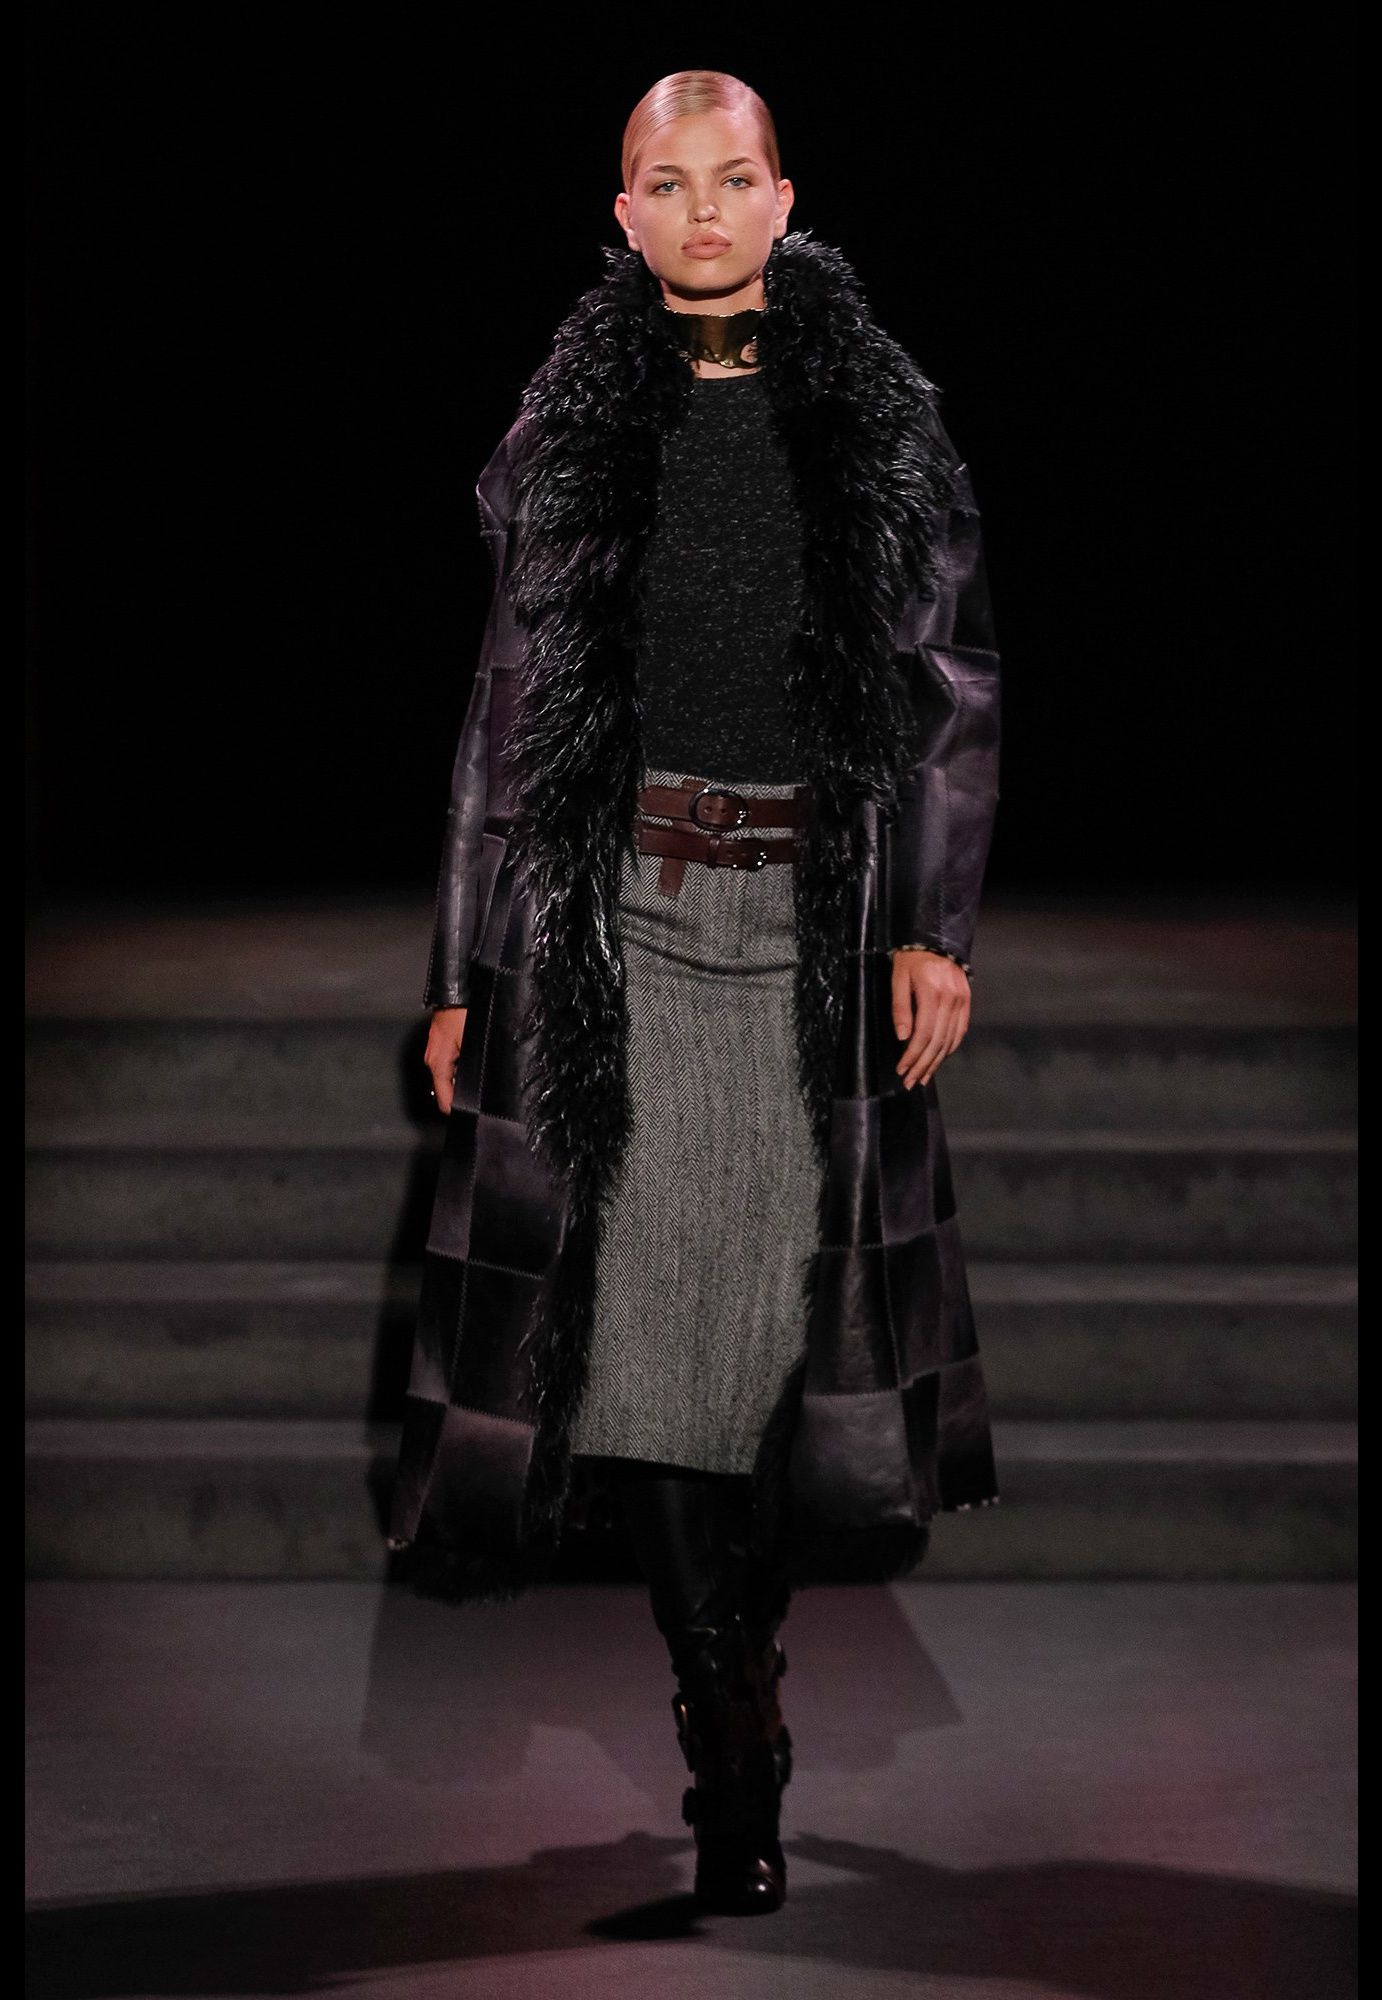 Tom Ford Fall/Winter 2016-2017 Femme Fashion Show